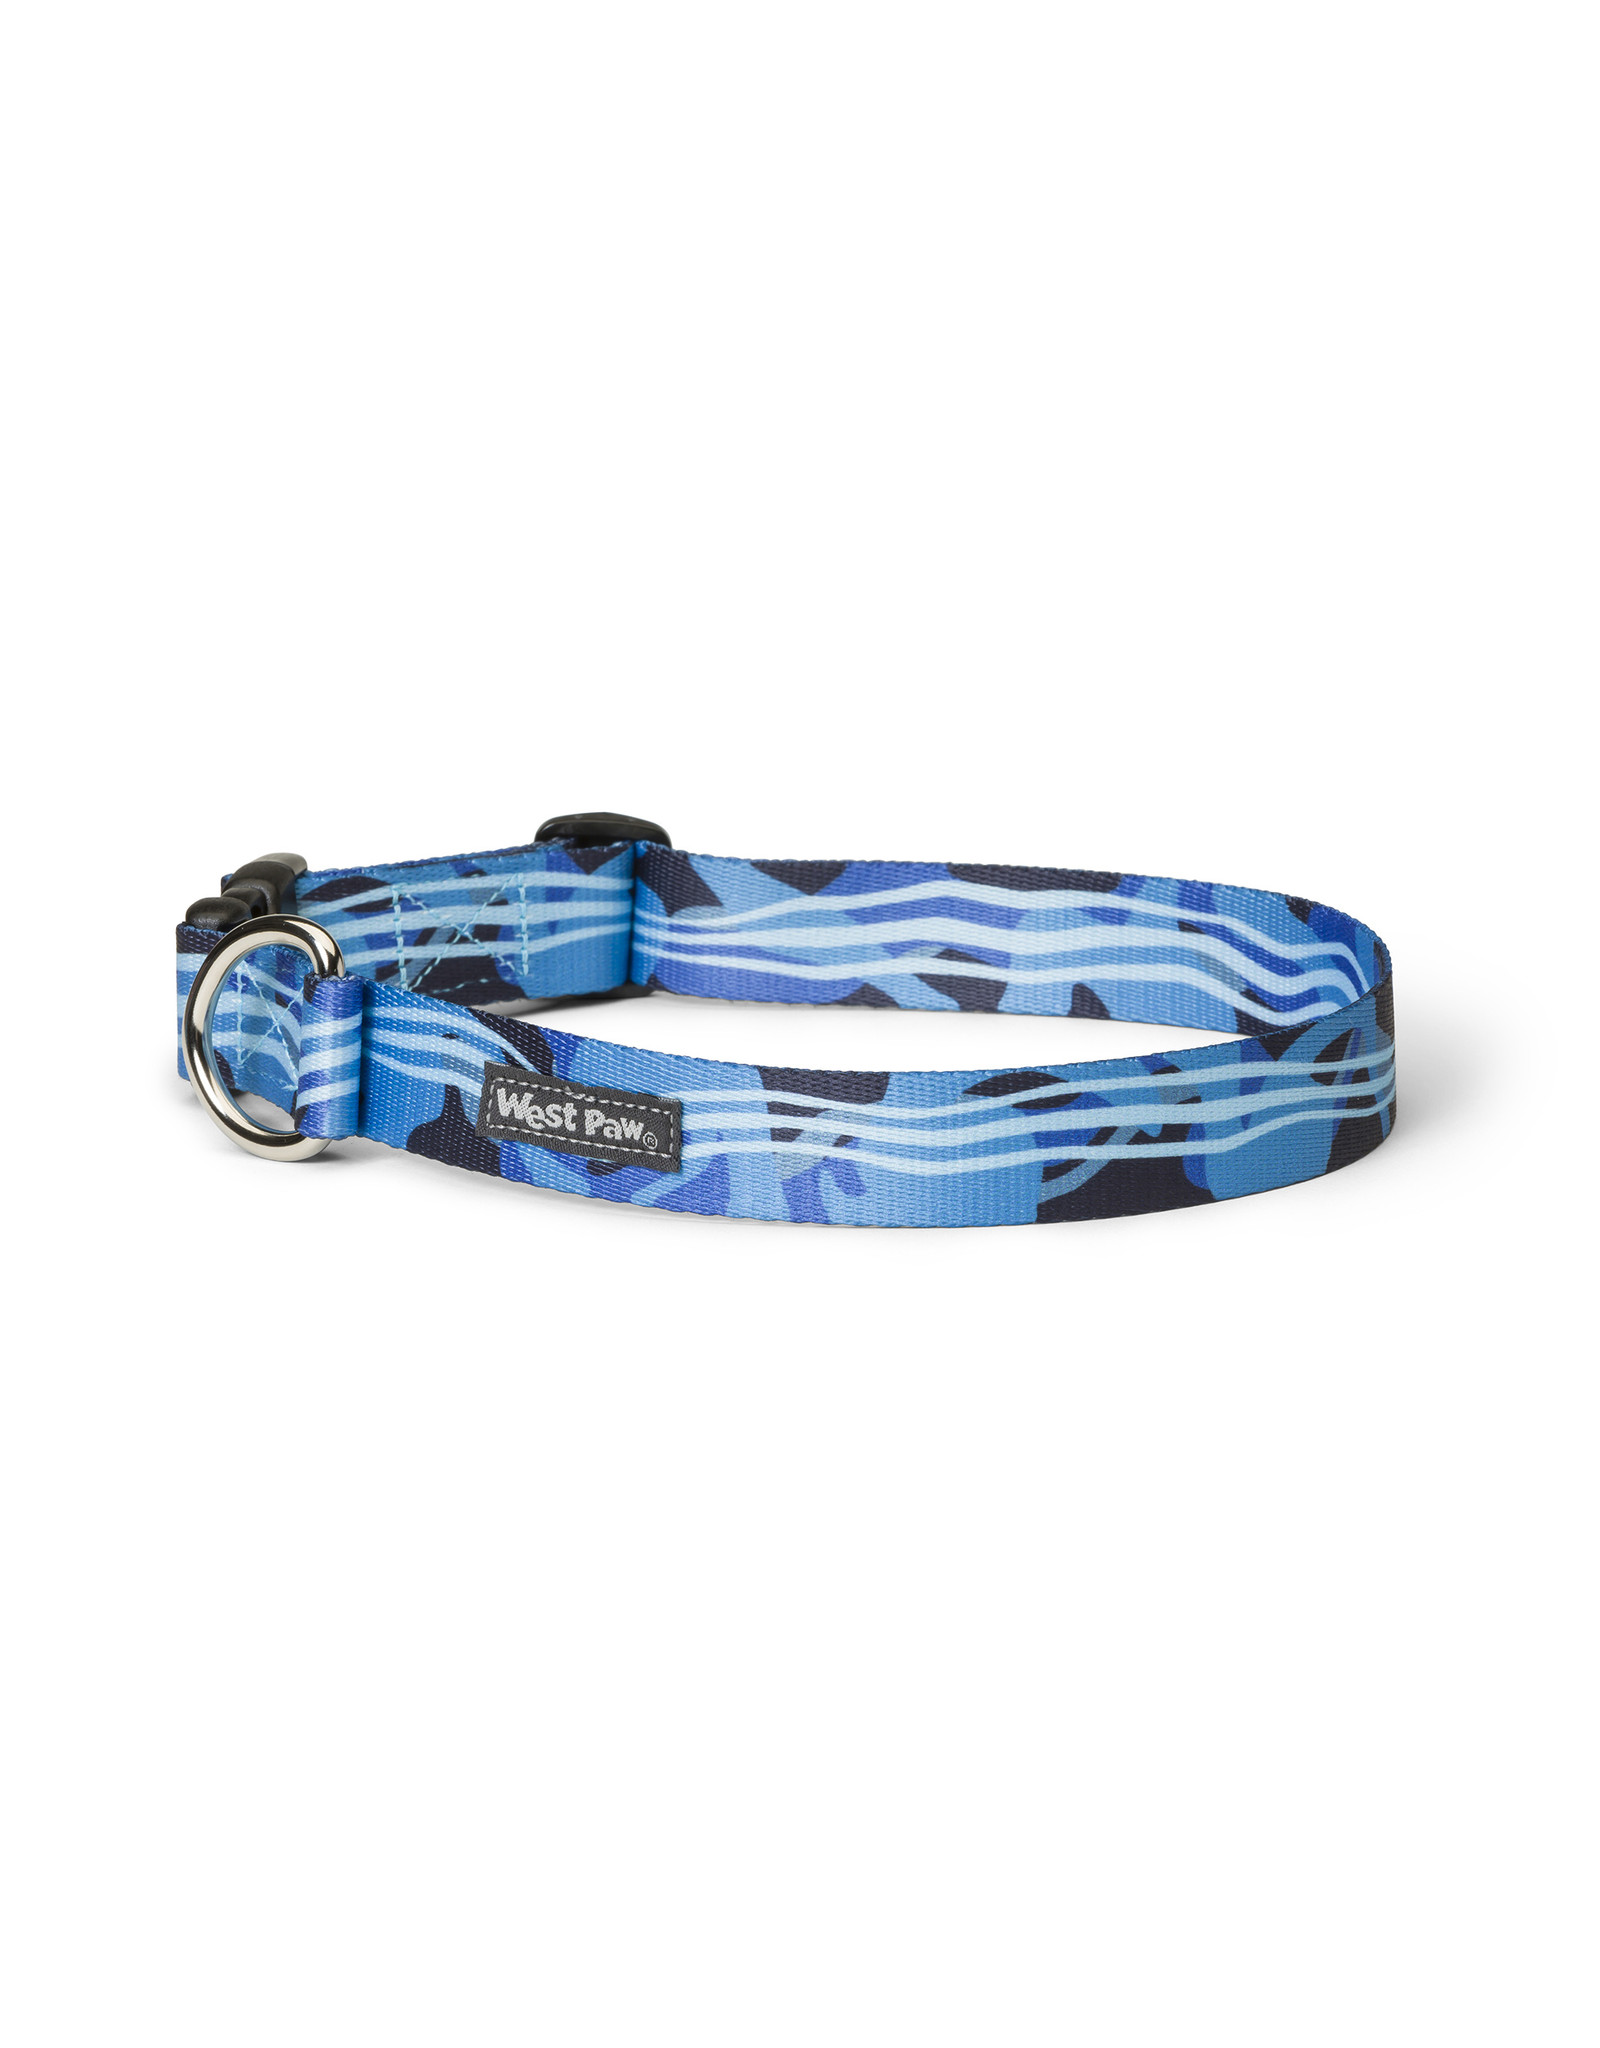 West Paw Designs Westpaw: Outings™ Collar Medium Blue Groove